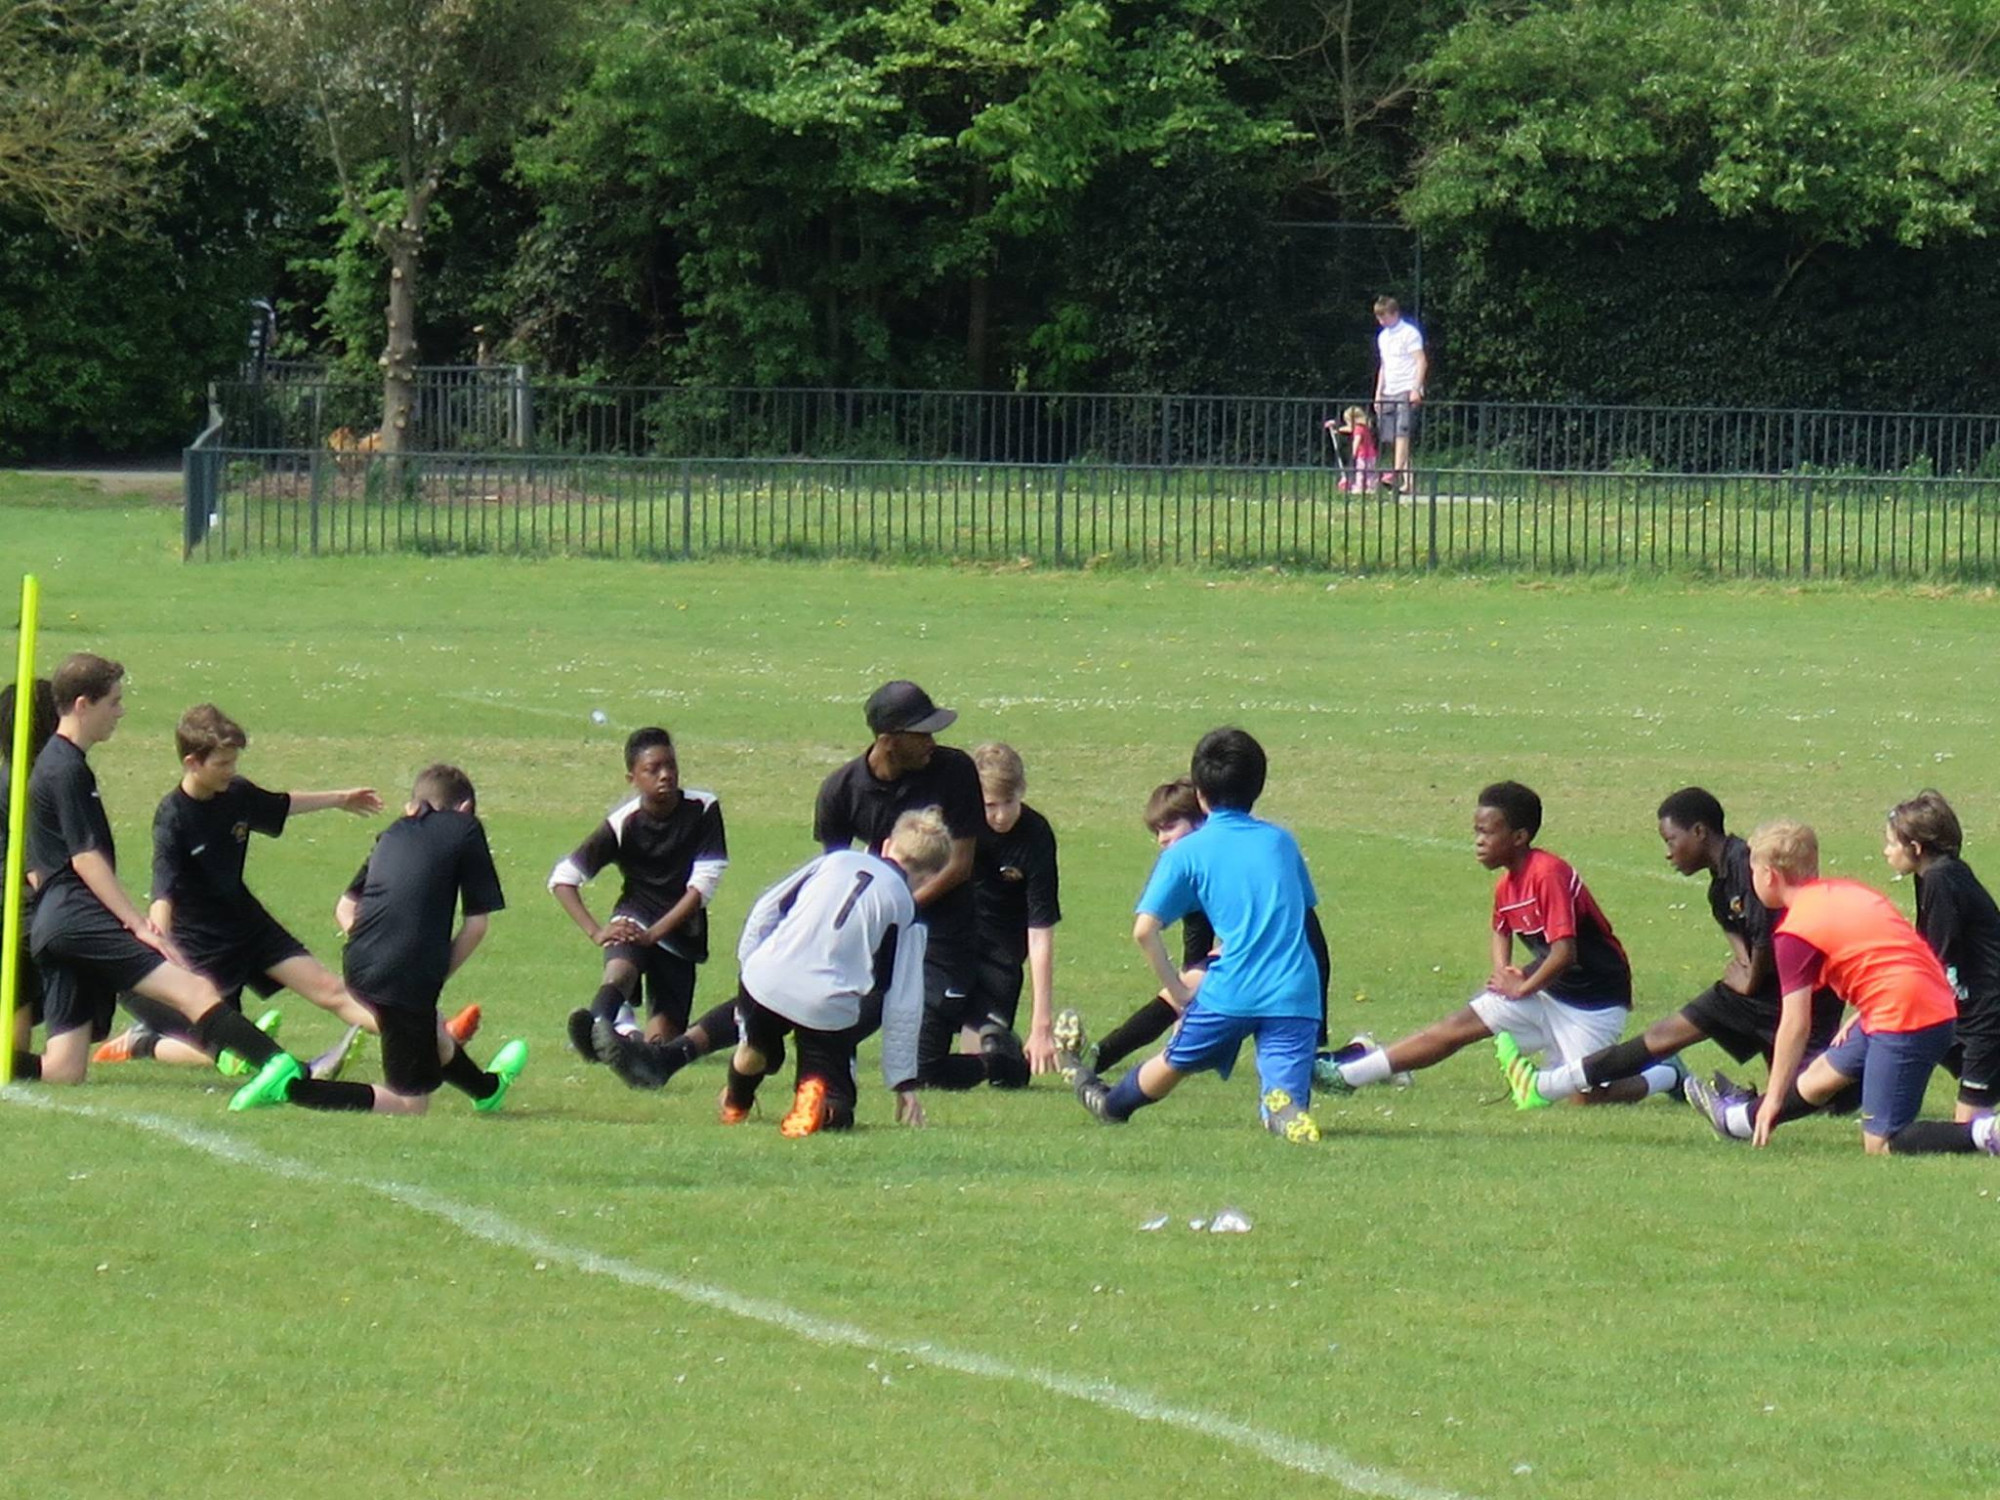 Darrius showing the U13s about stretches